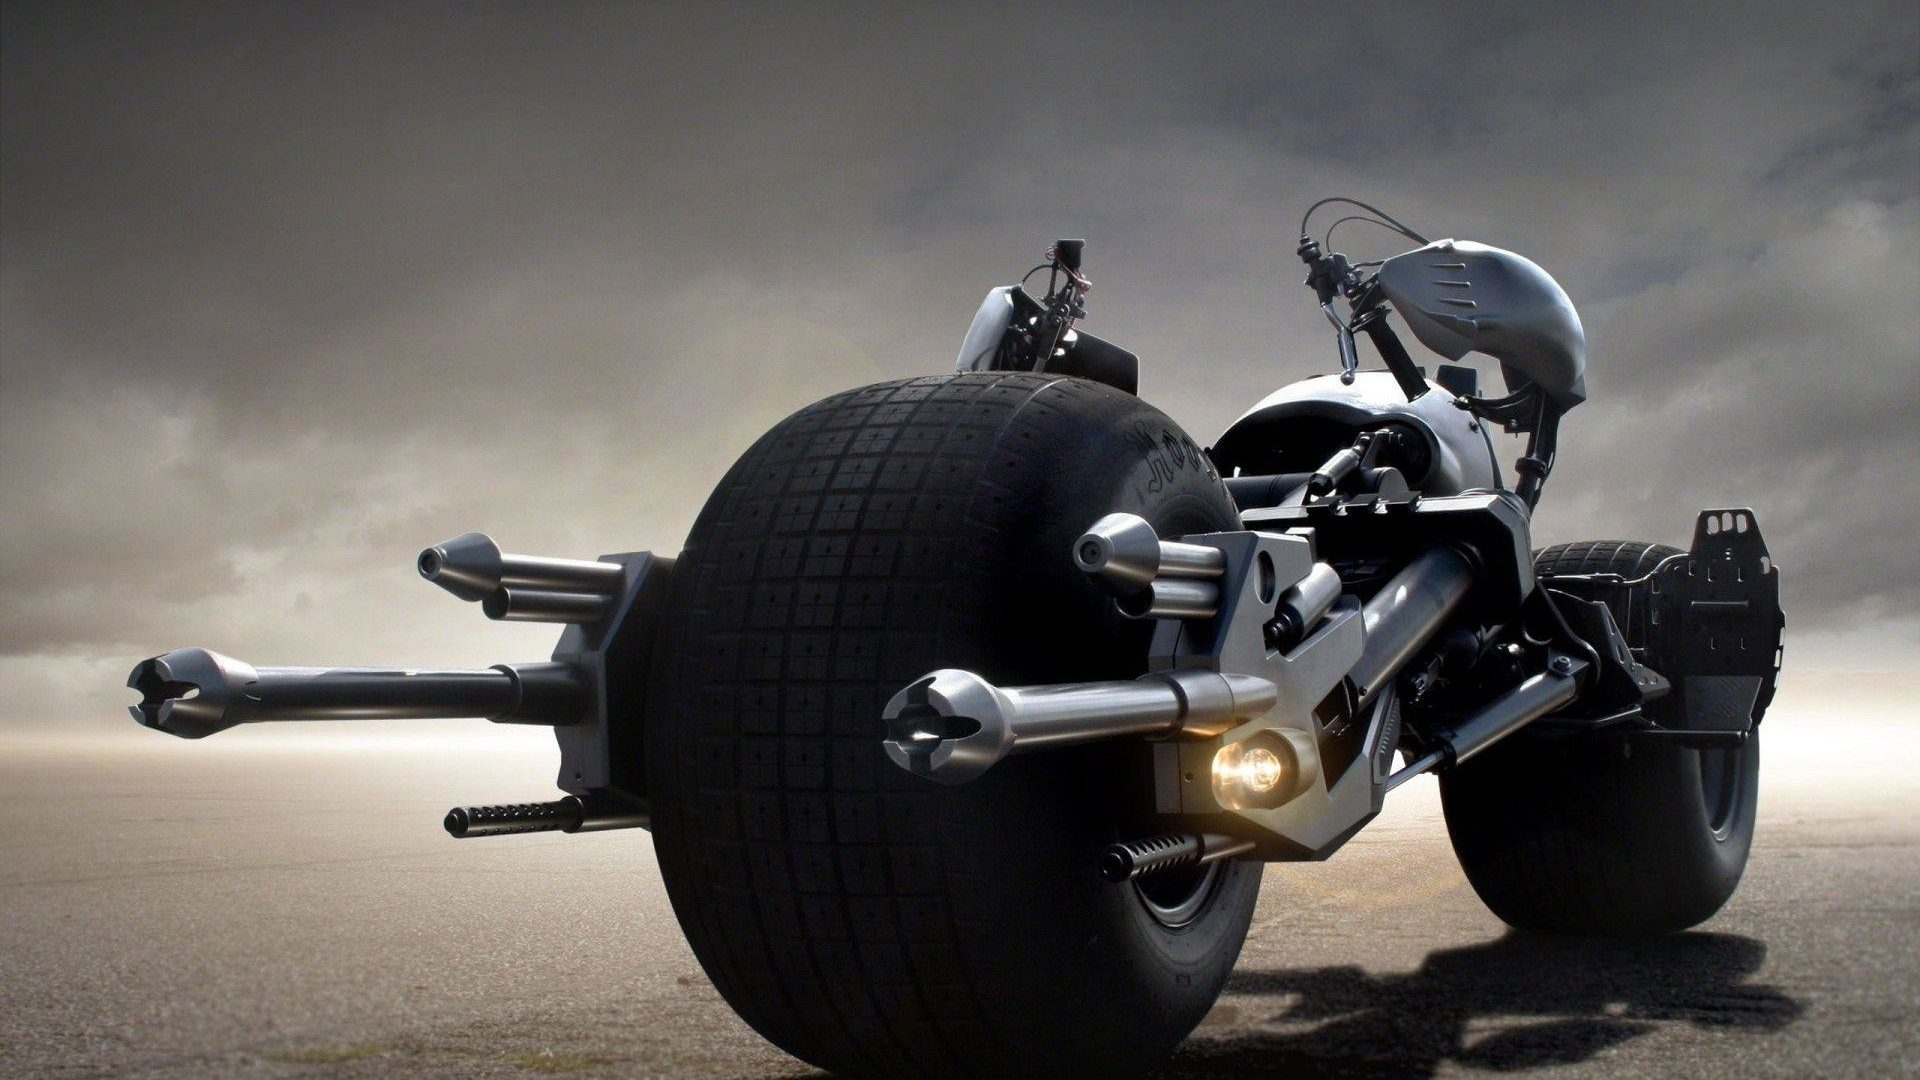 HD Wallpaper Of Batmans Batpod PaperPull 1920x1080